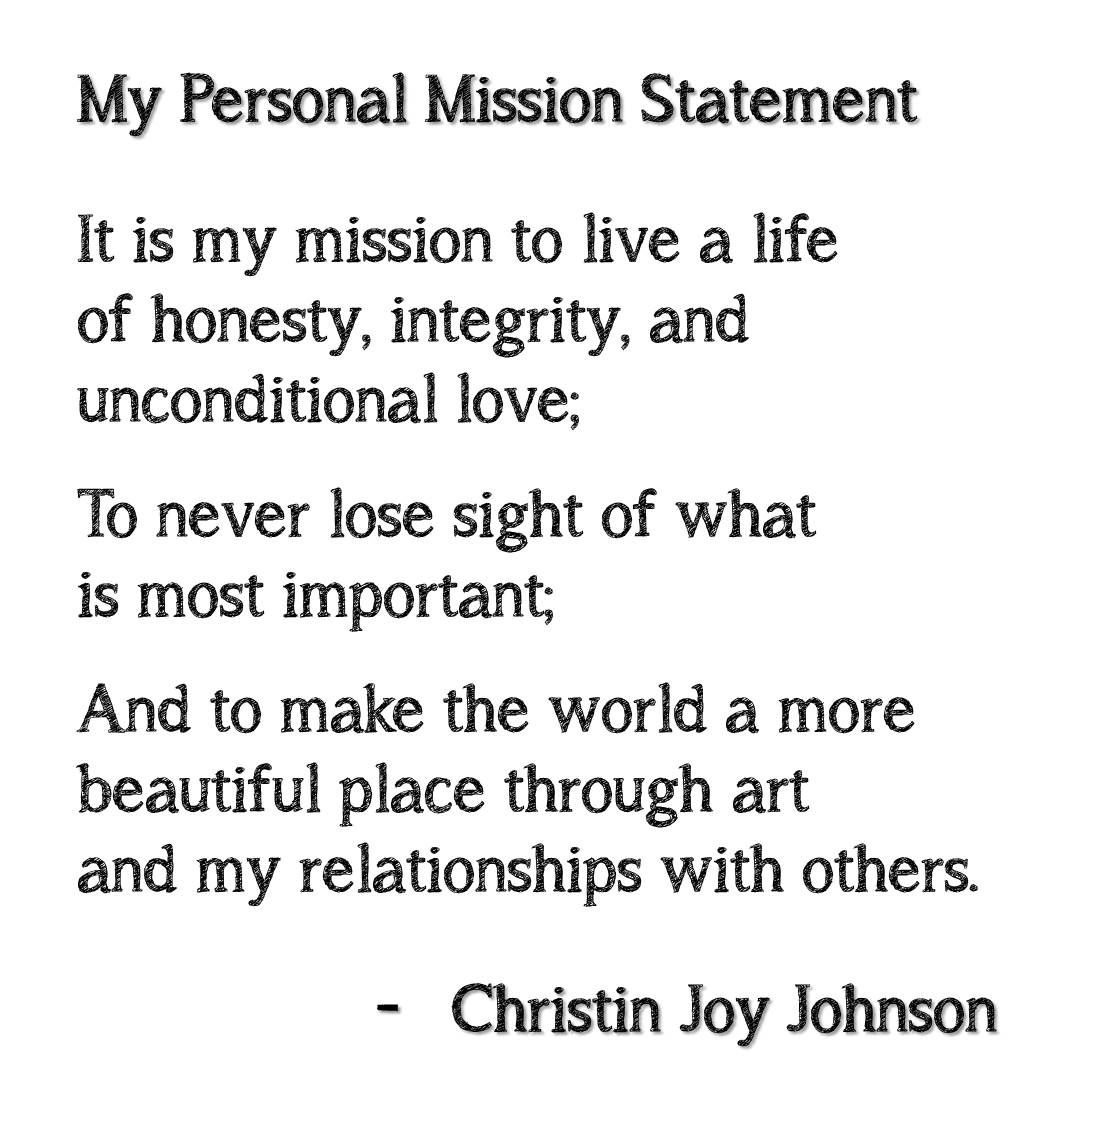 My mission statement in life